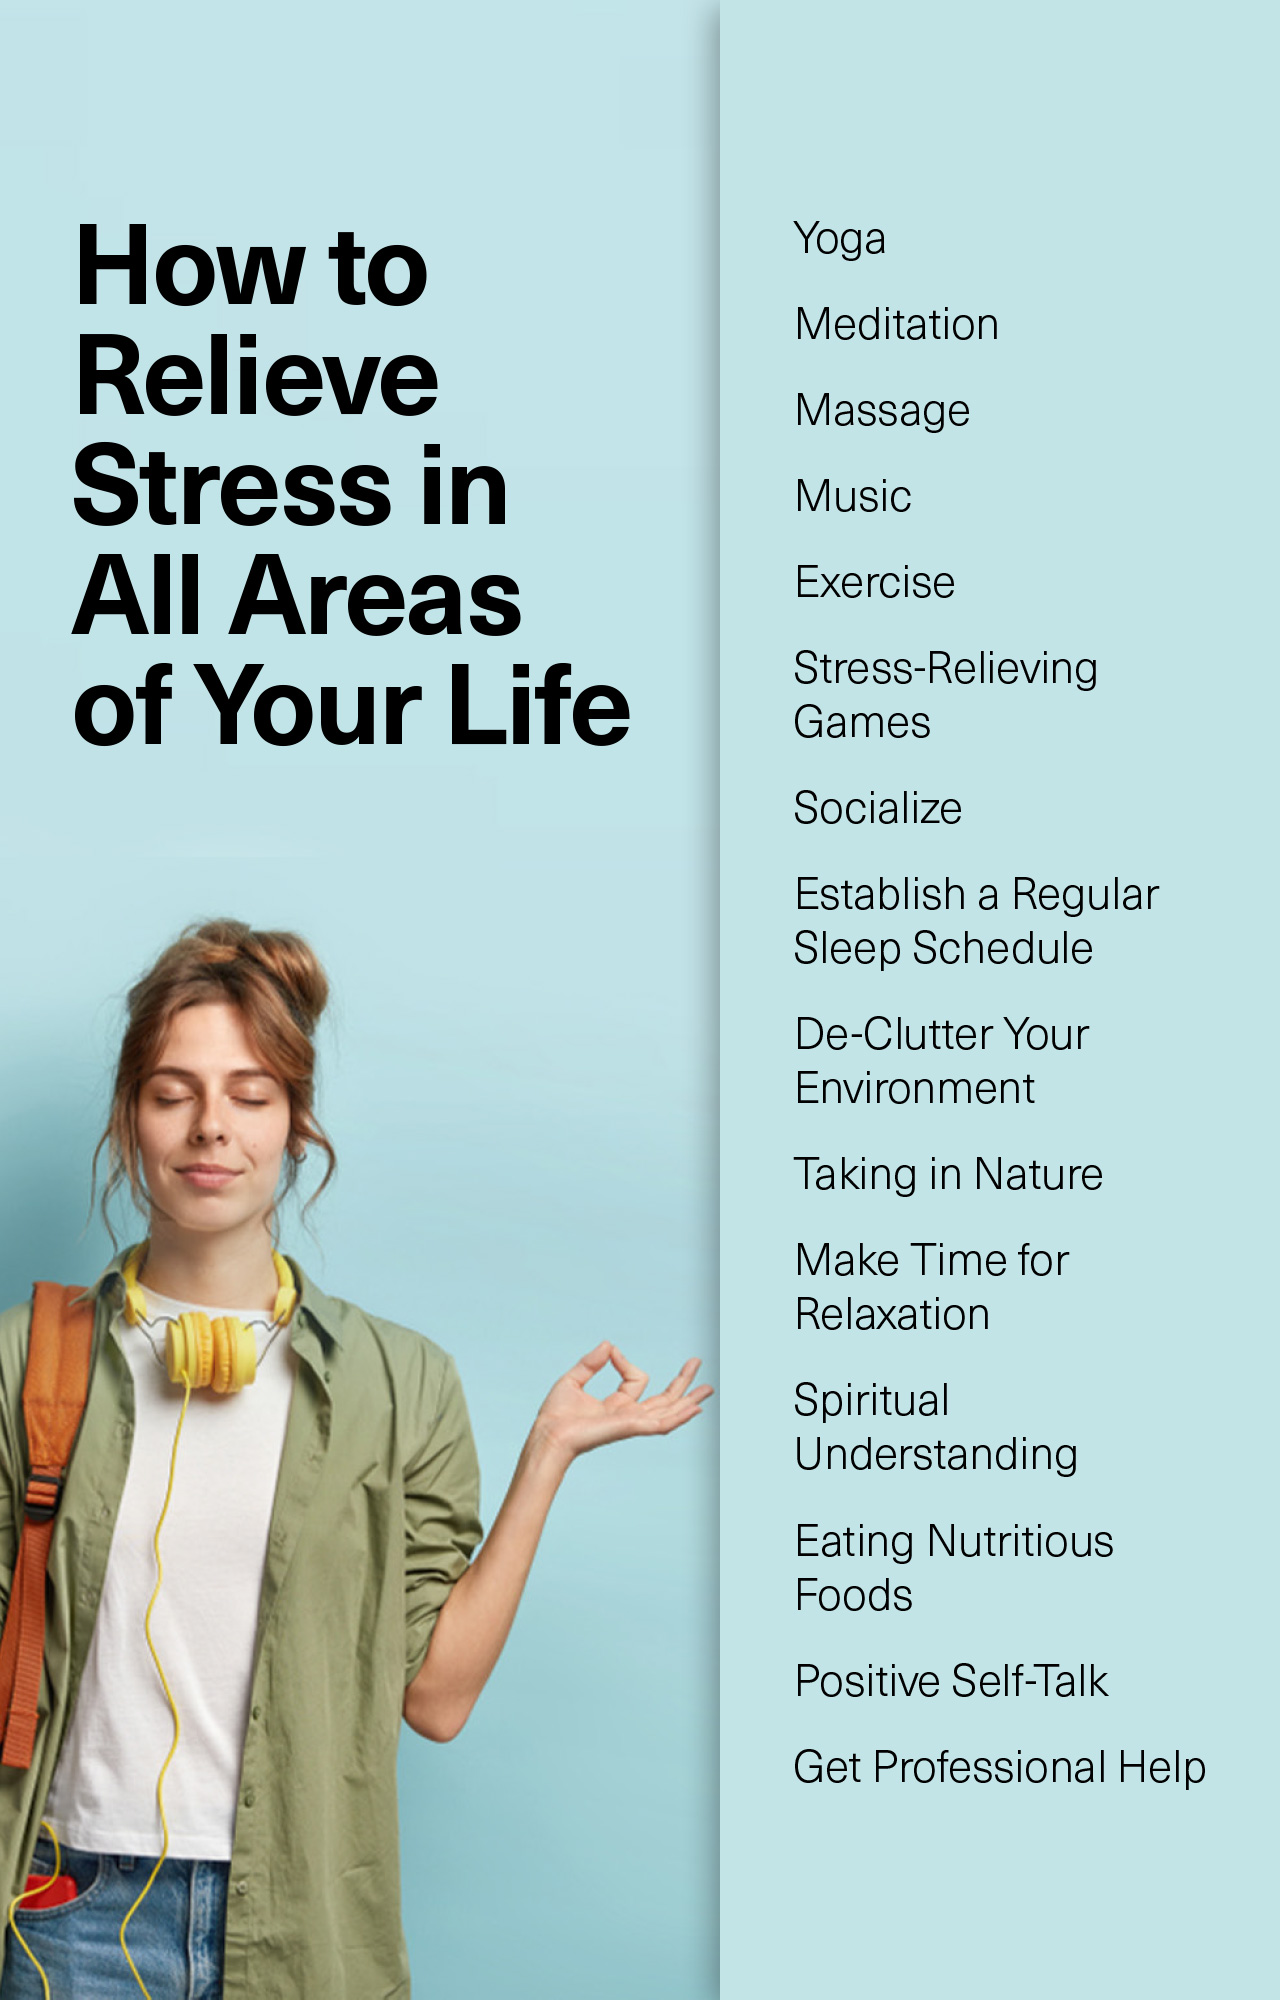 How to Relieve Stress in All Areas of Your Life